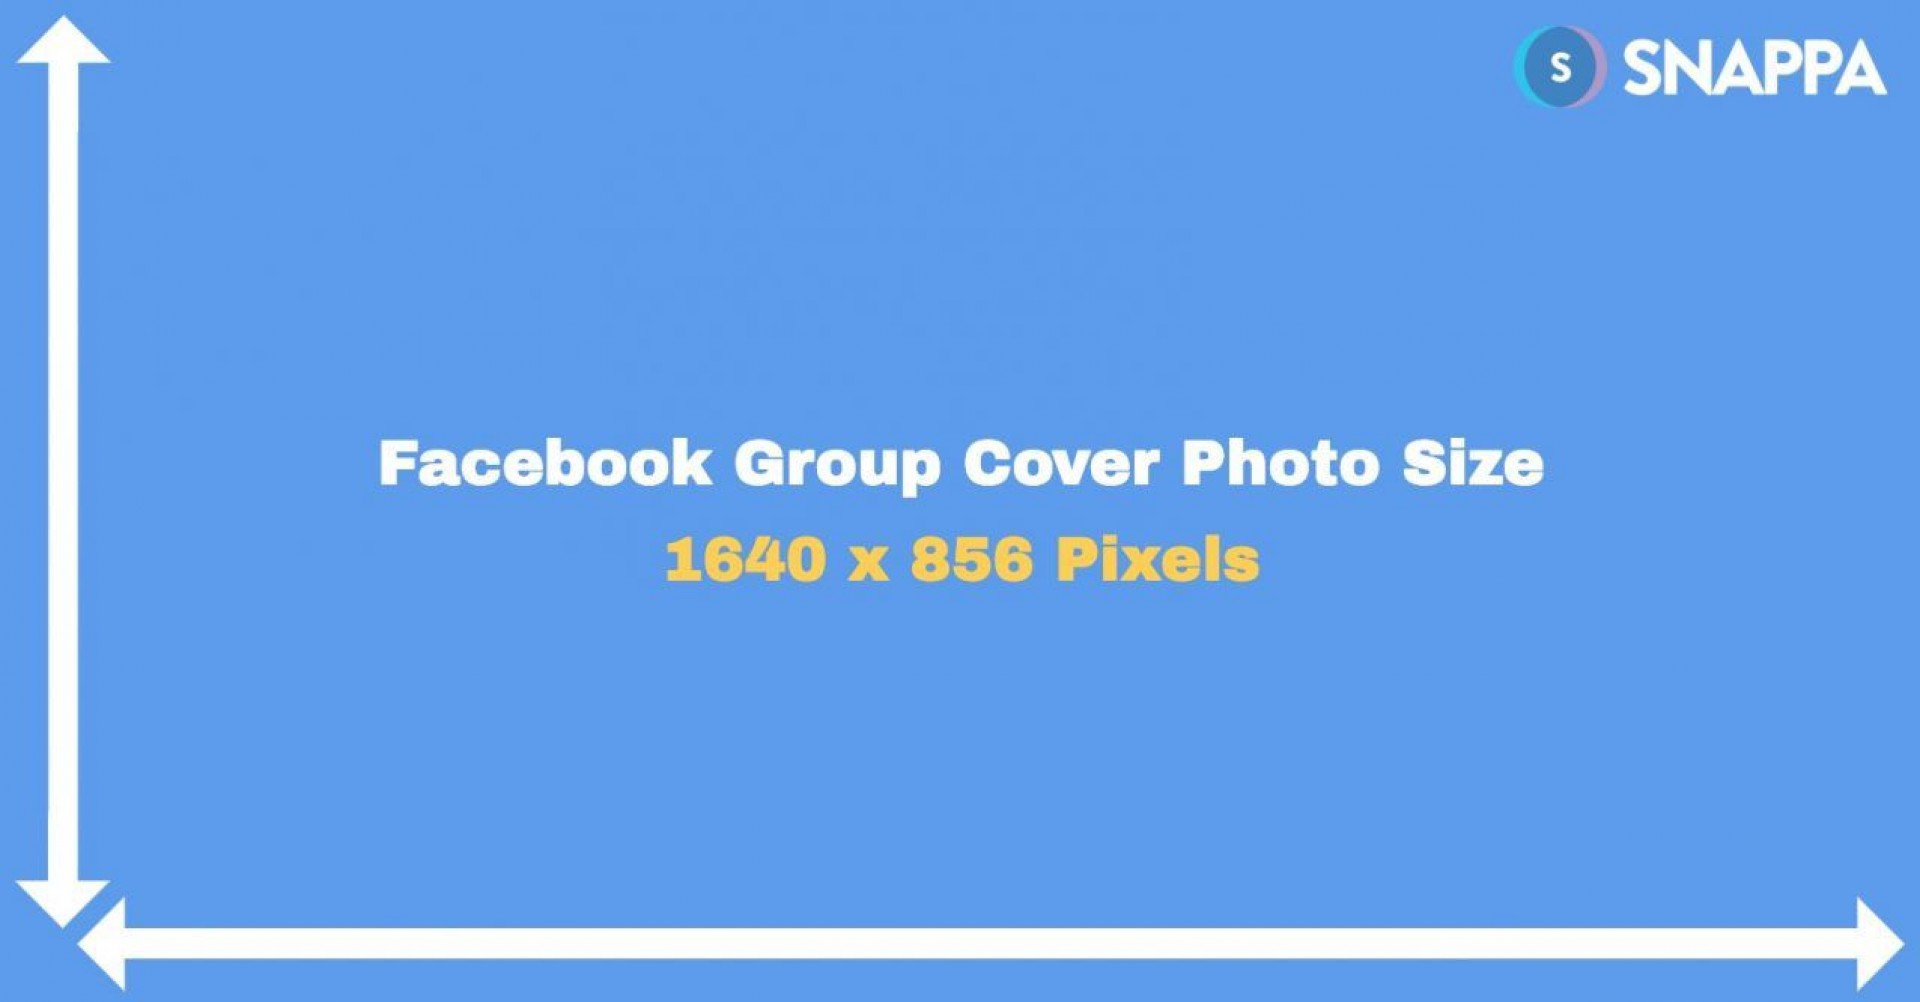 004 Wondrou Facebook Page Banner Template Design  2020 Cover Photo 2019 Fan Psd1920